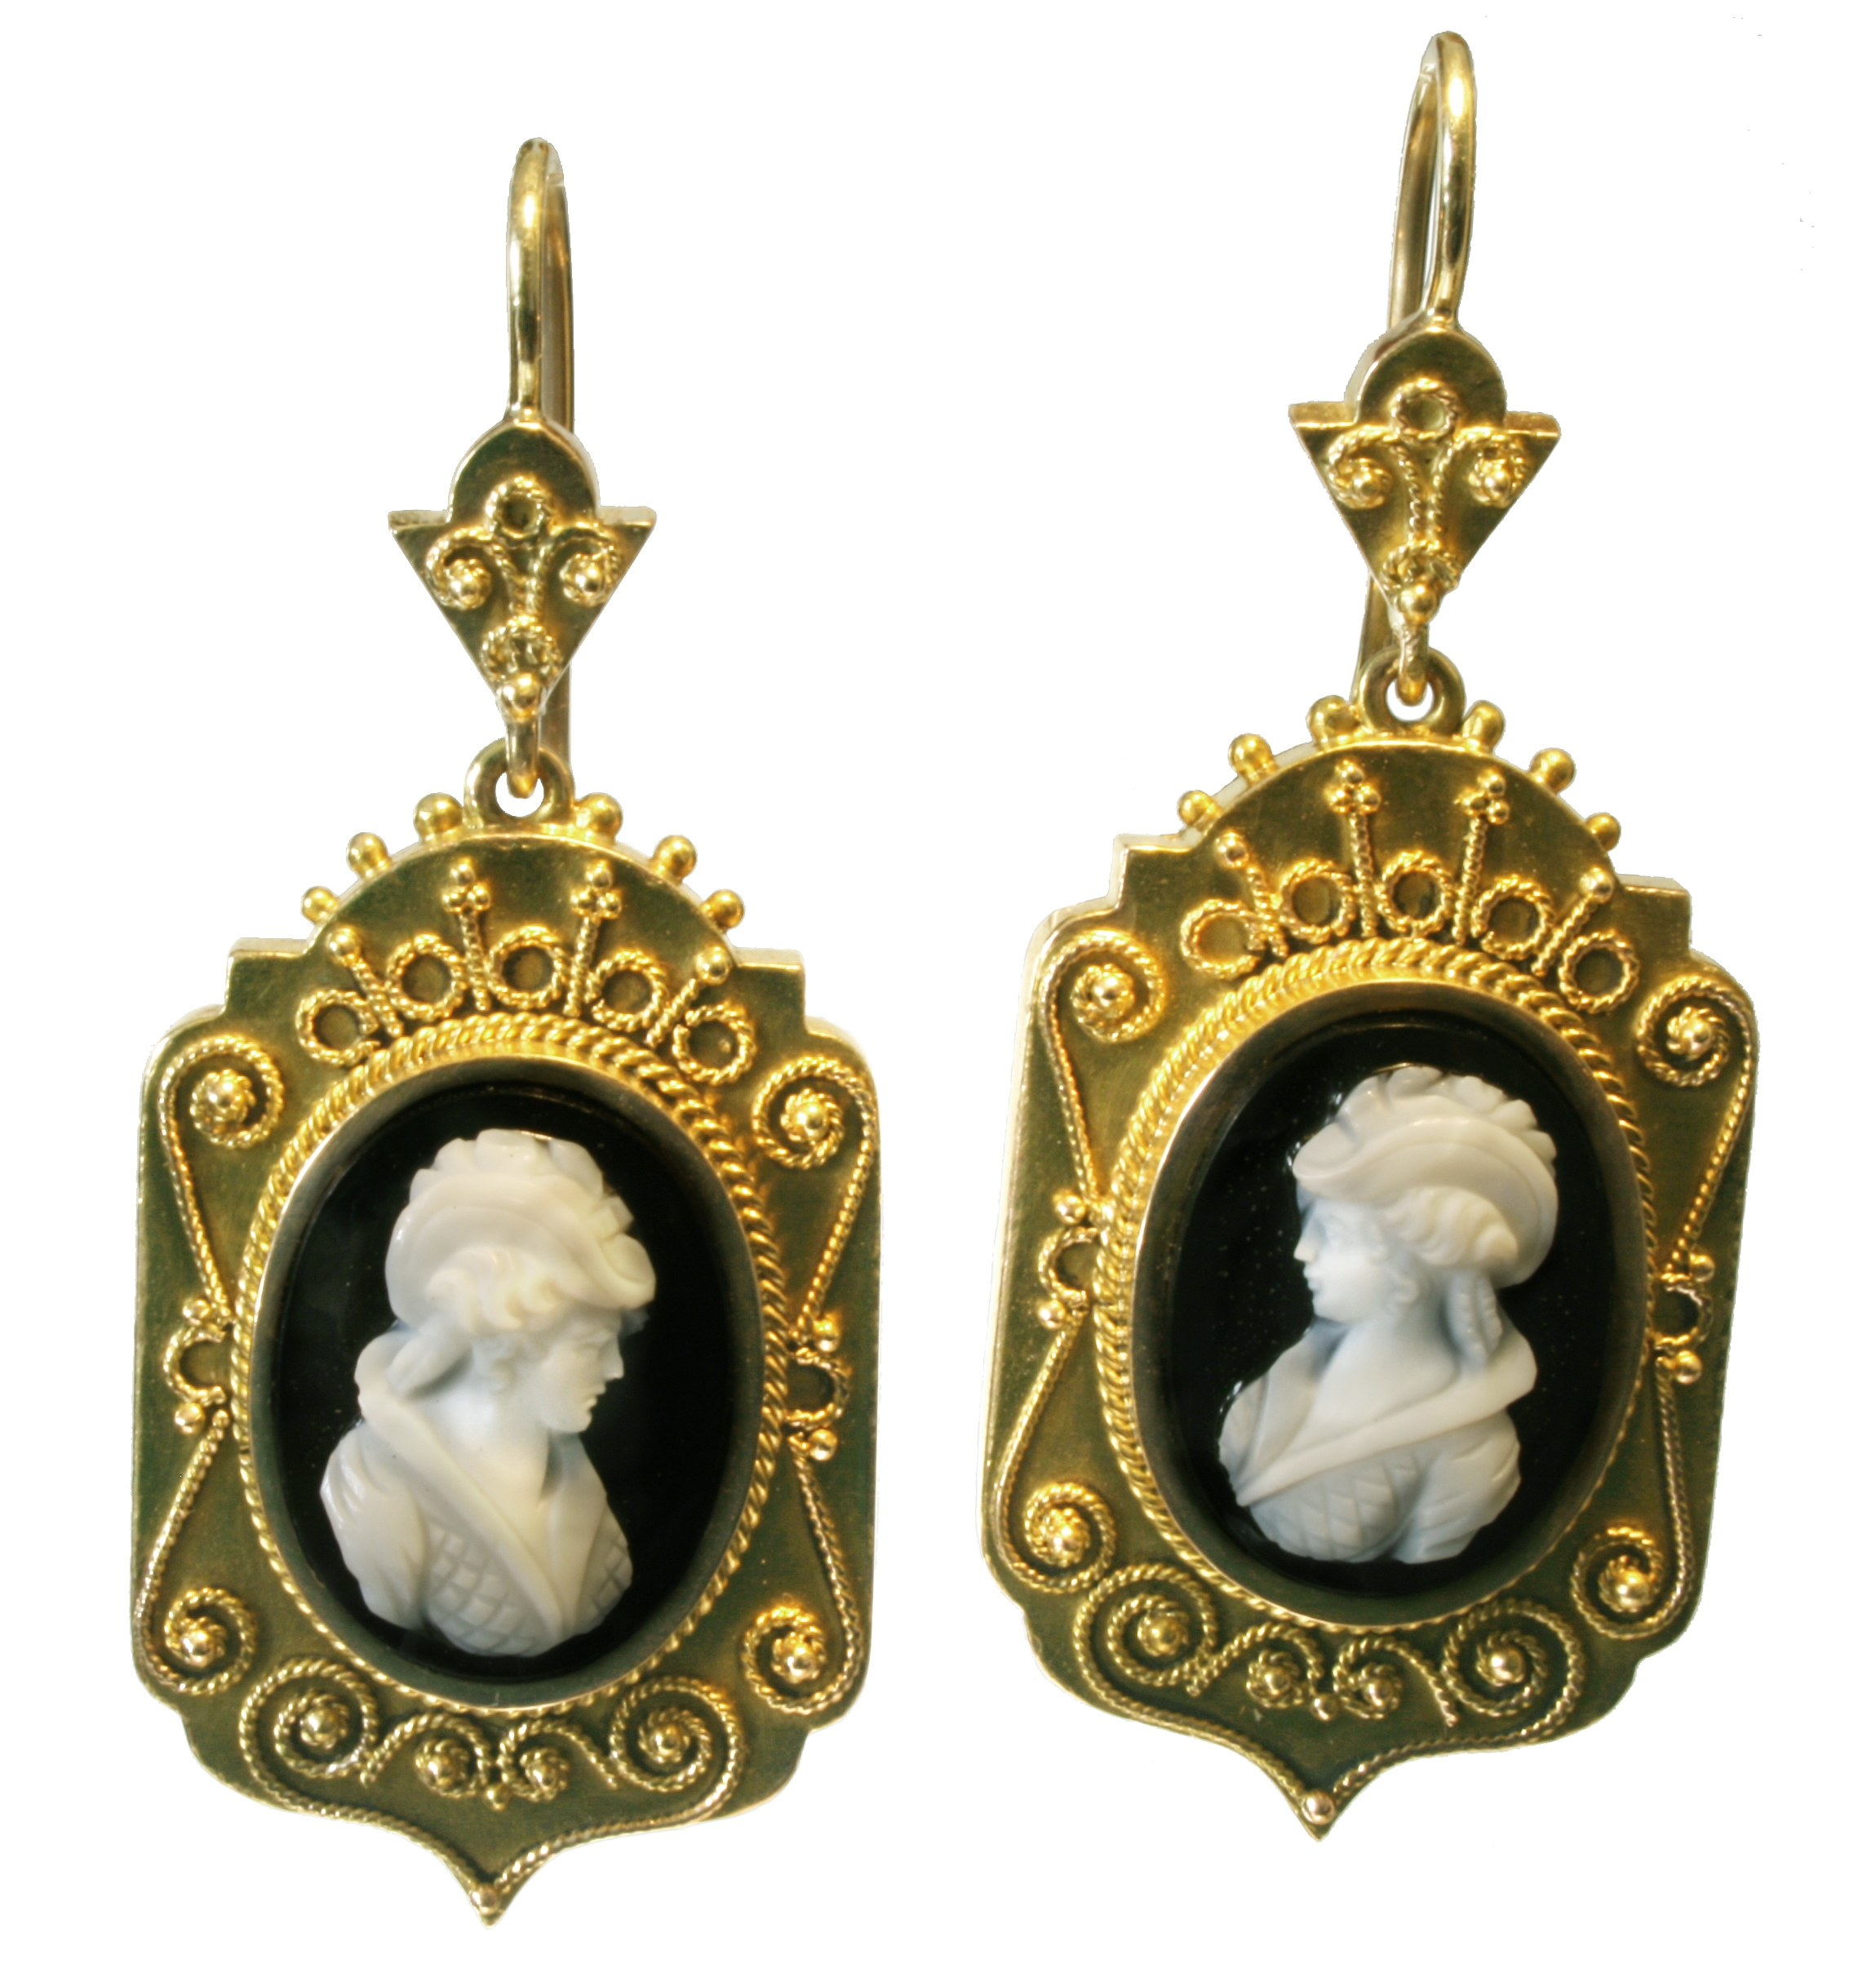 Antique 15ct Gold Cameo Earrings